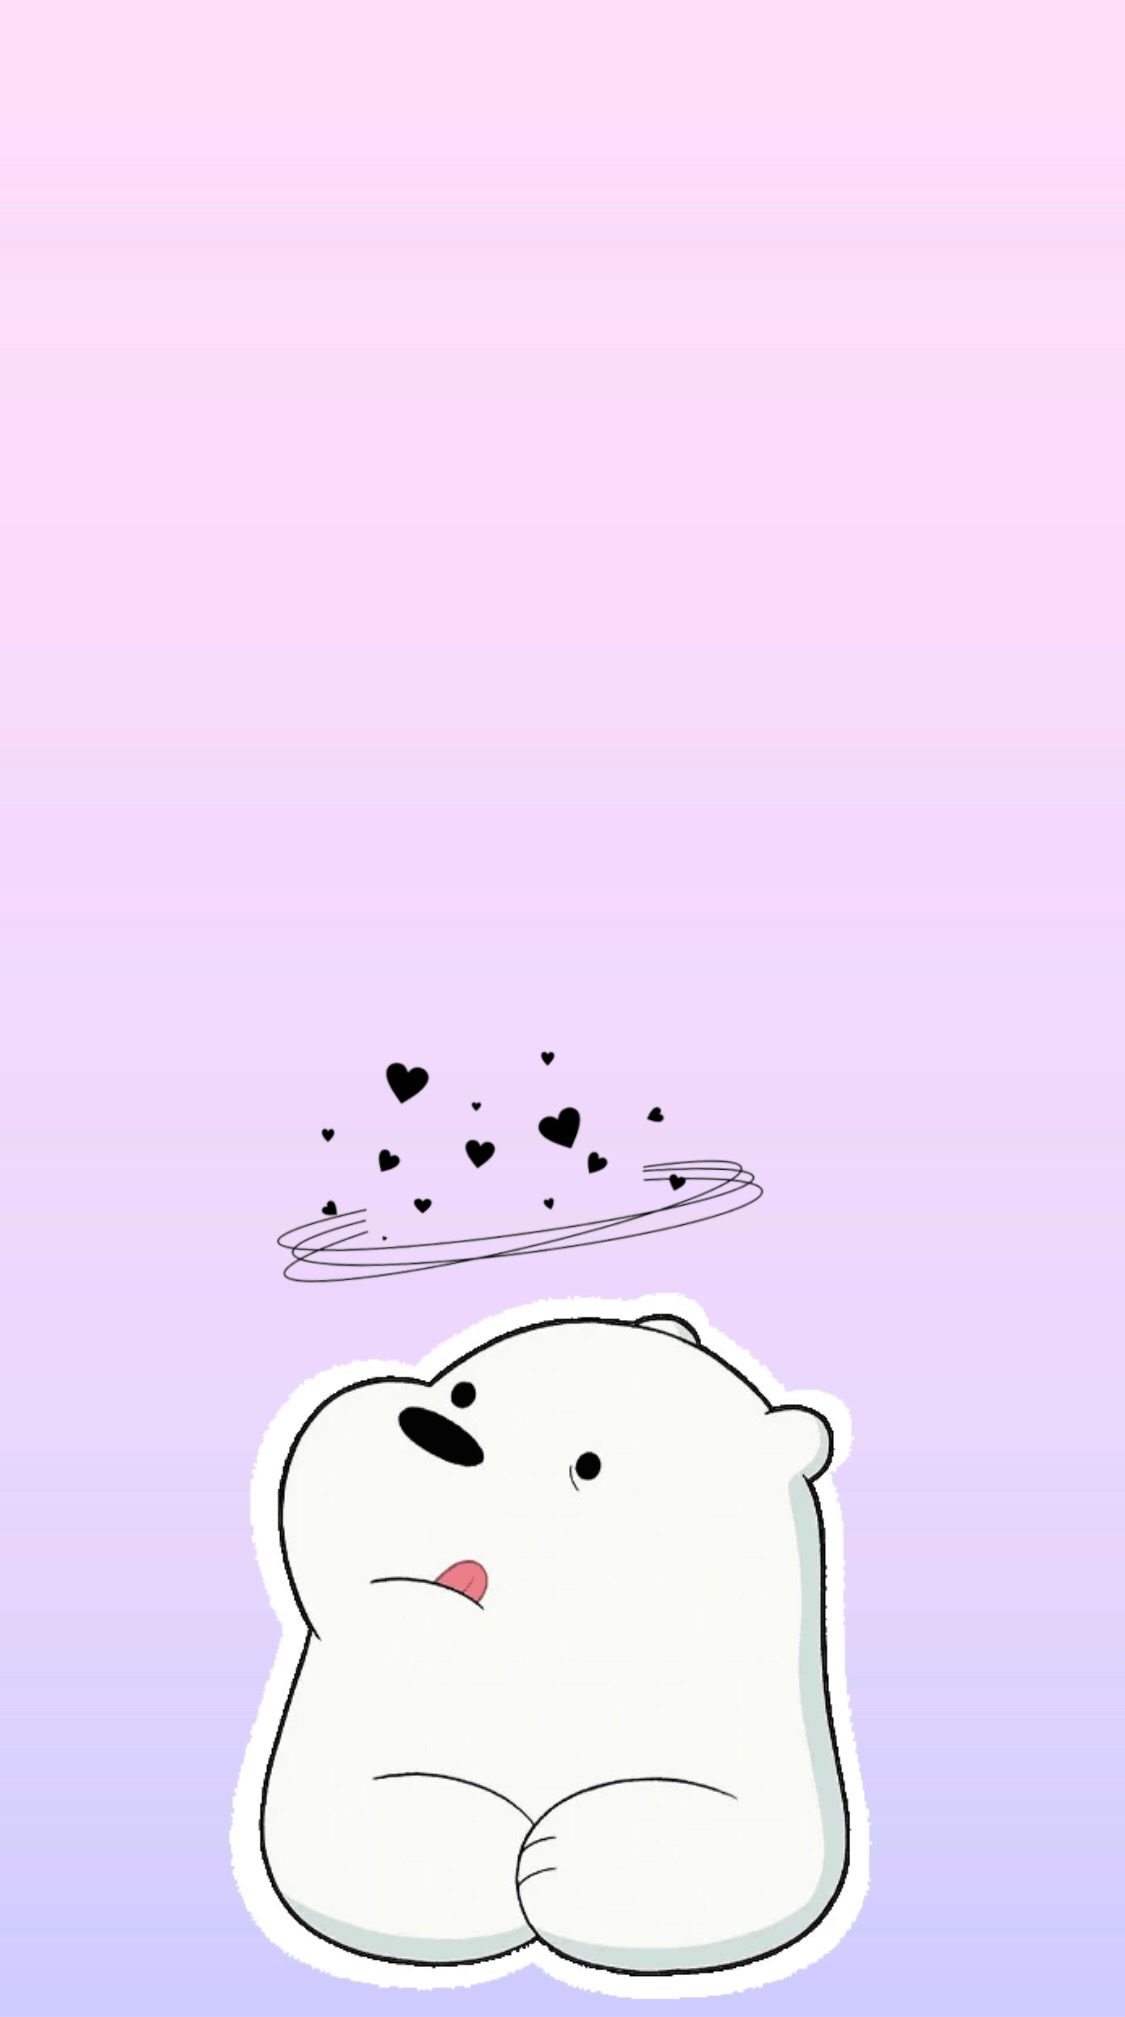 Cute Drawing Polar Bear Wallpaper Android We Bare Bears Ice Bear Iphone Wallpaper ️ Webearbear